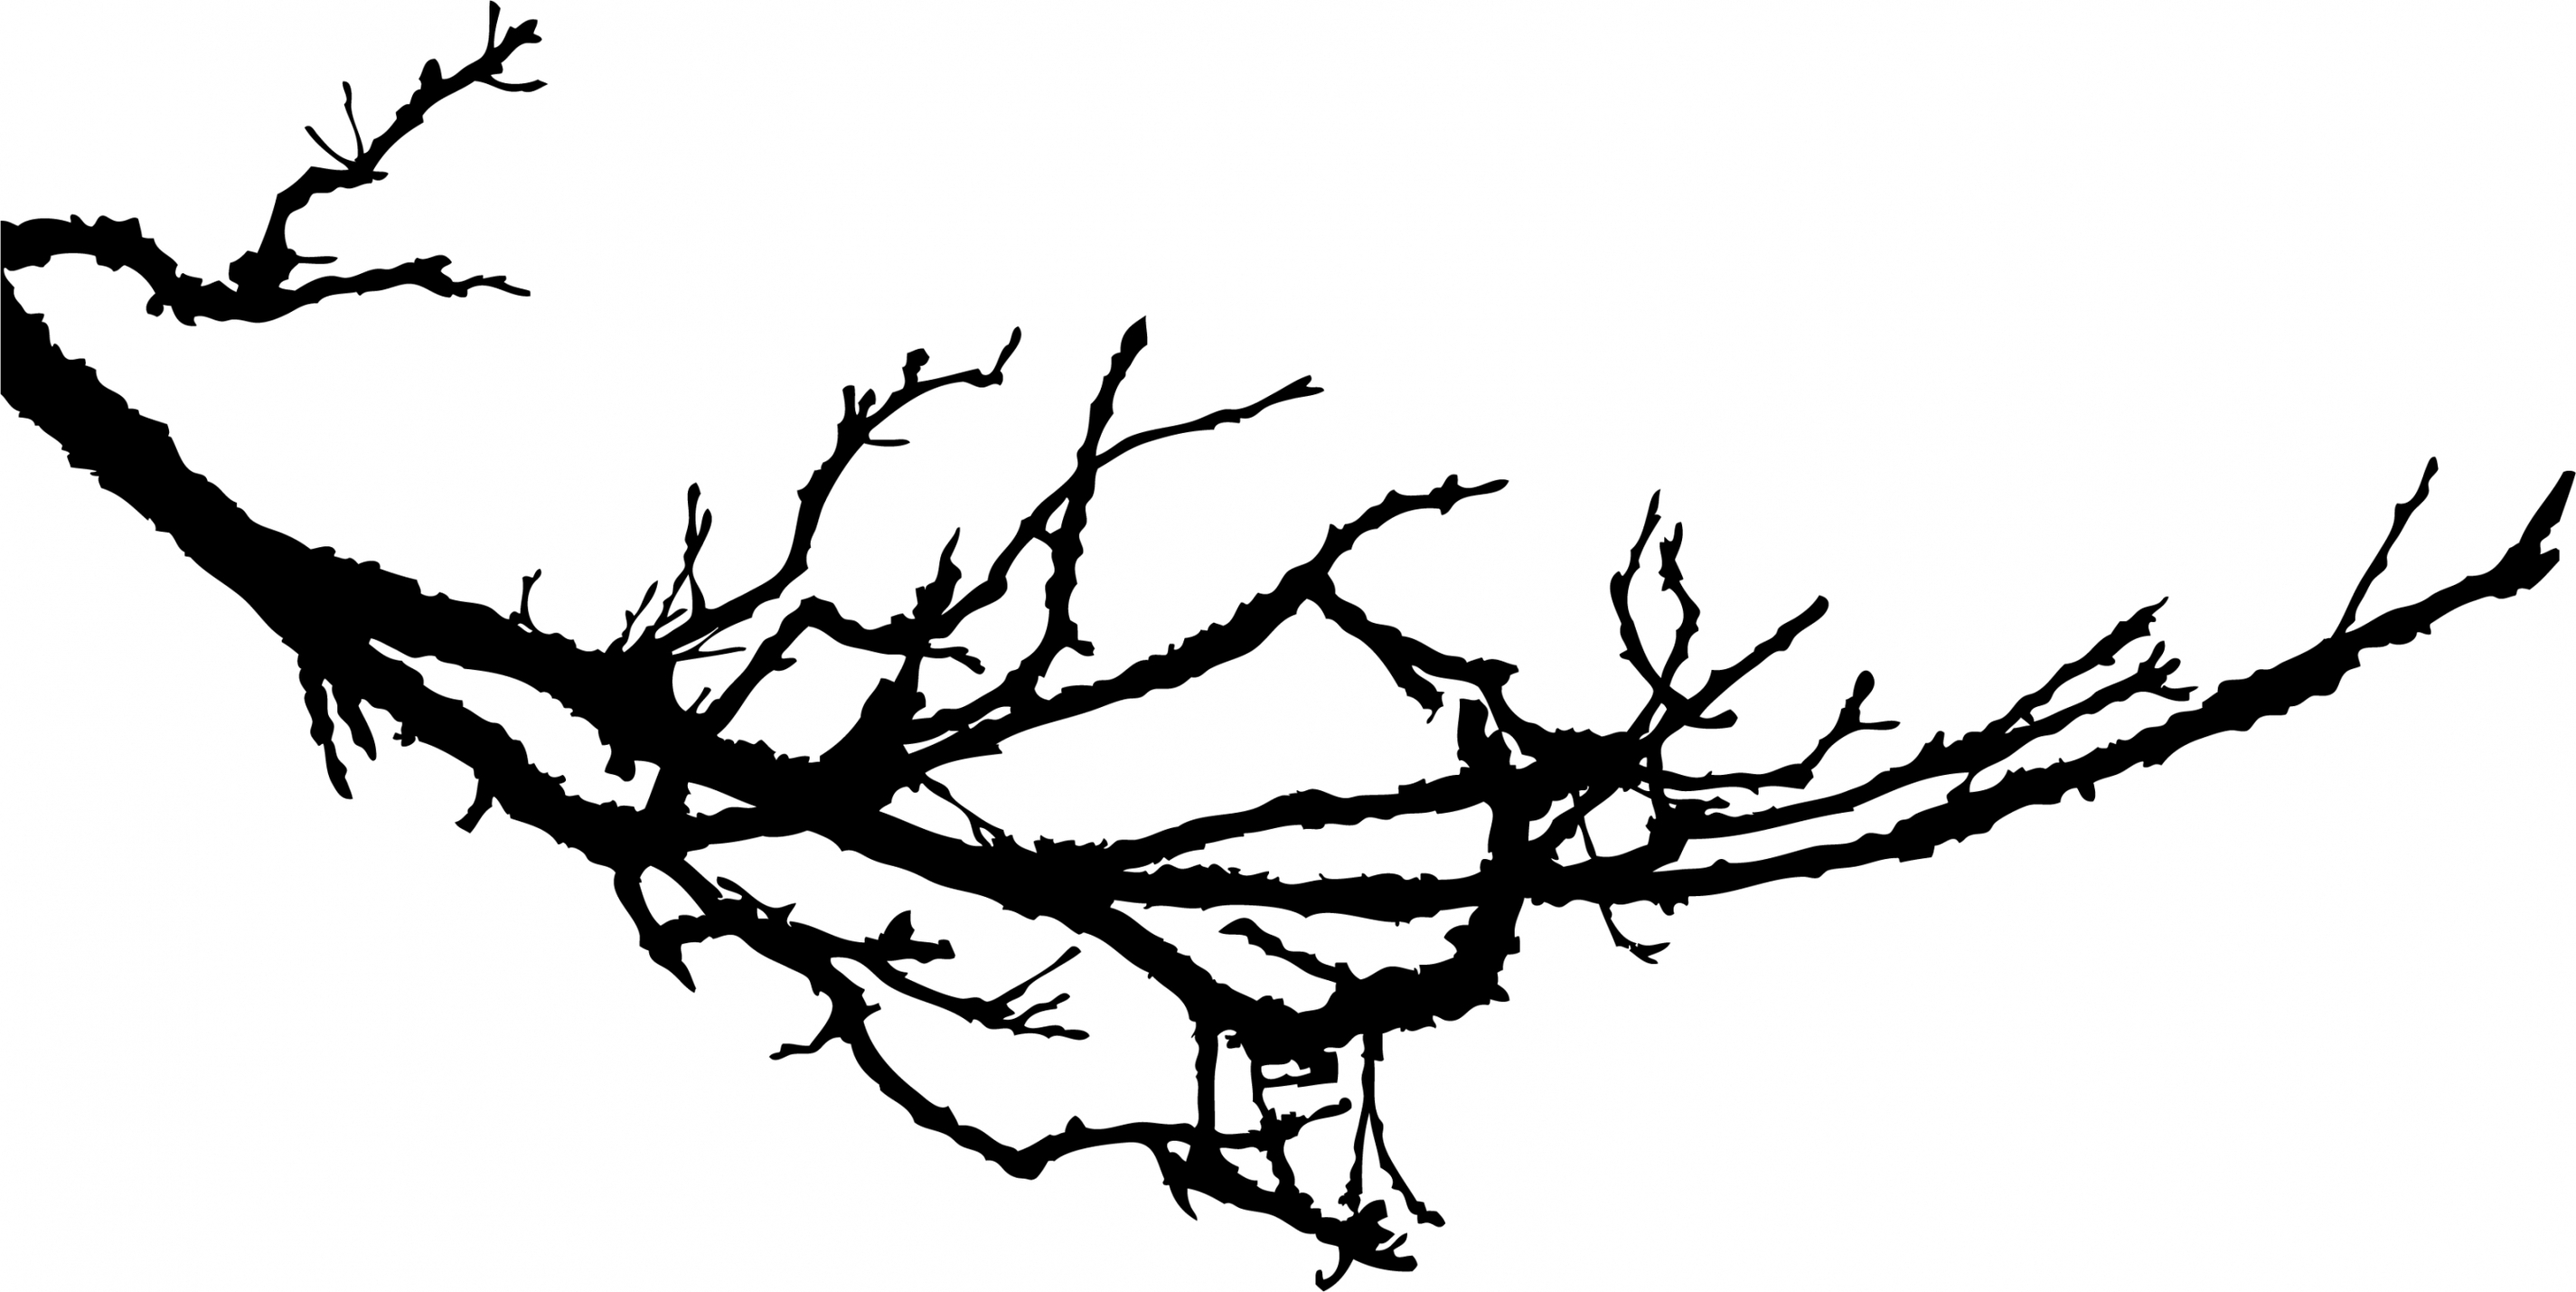 Gnarly Branch Silhouette Wall Sticker Large Tree Clipart.